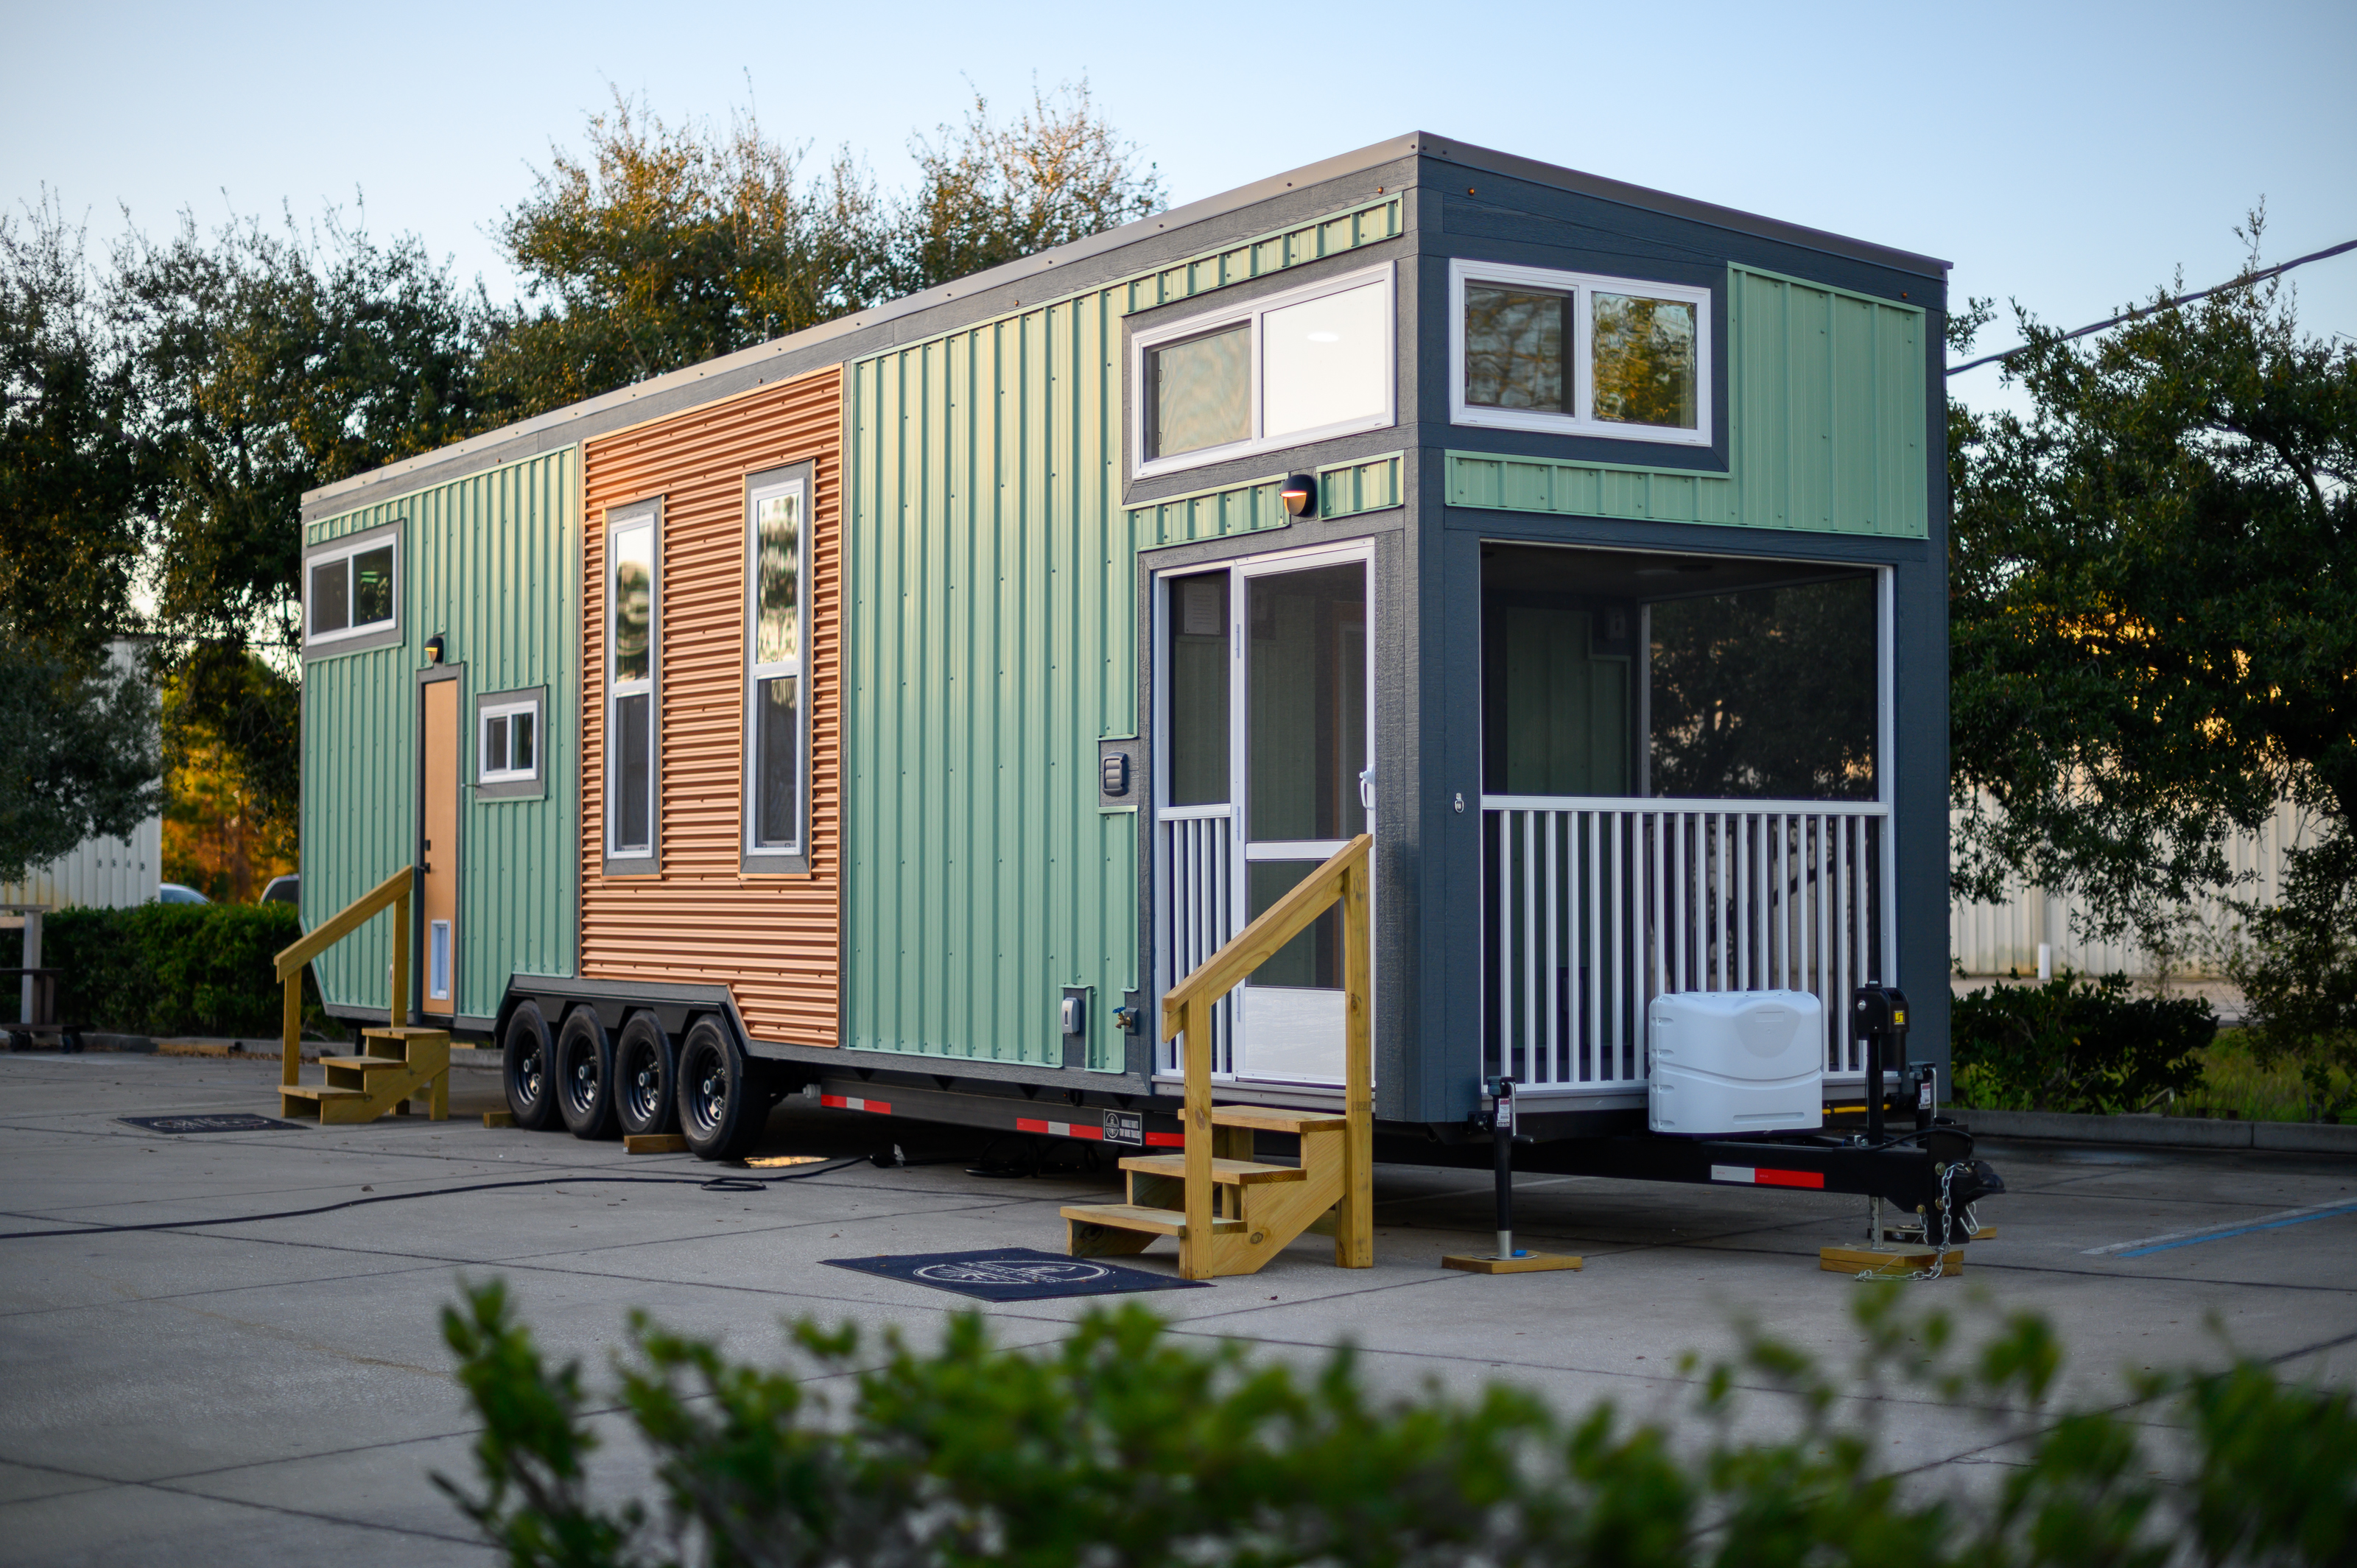 LA Gives Green Light To Movable Tiny Homes As ADUs